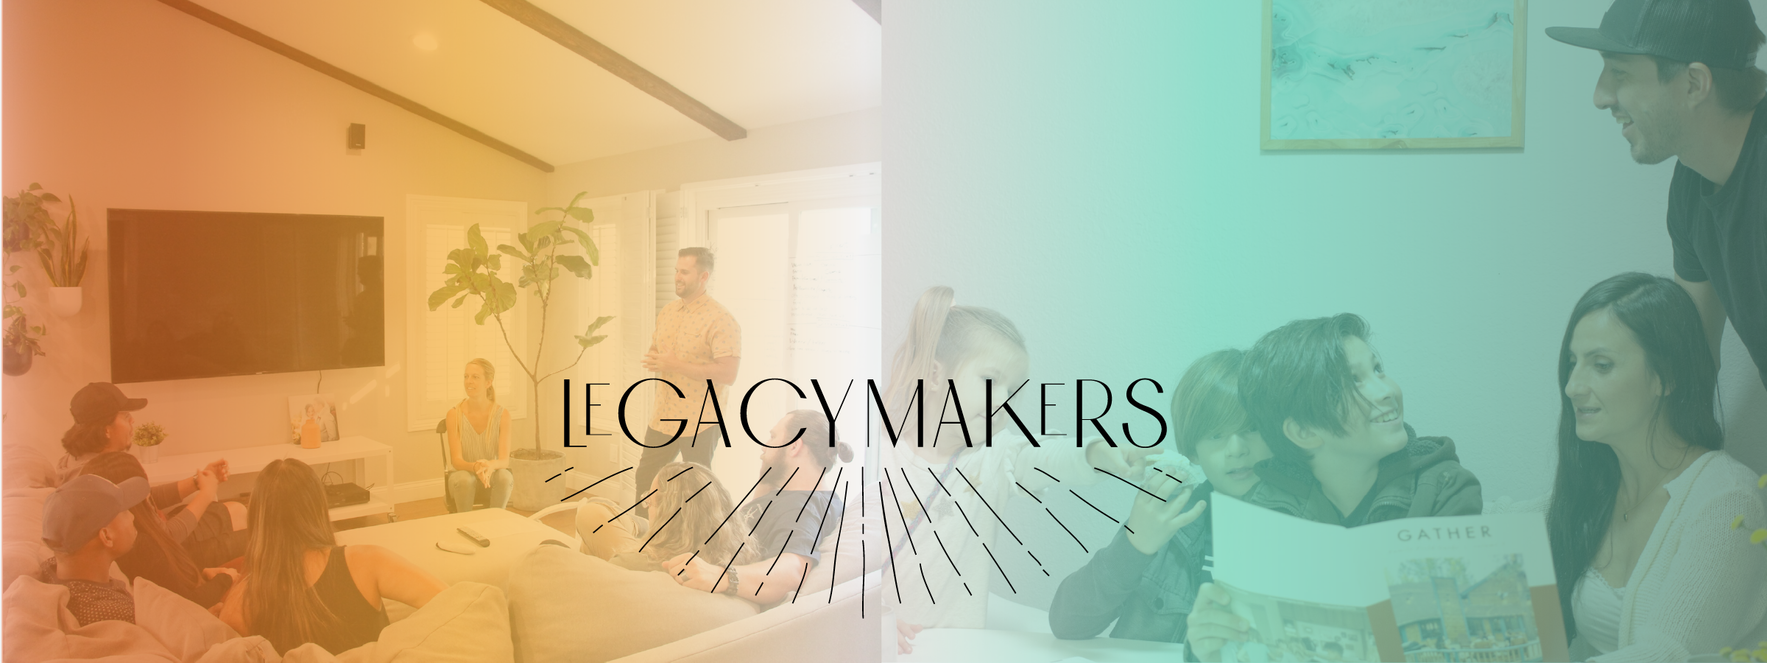 Partner with Legacymakers to Create Generational Change image